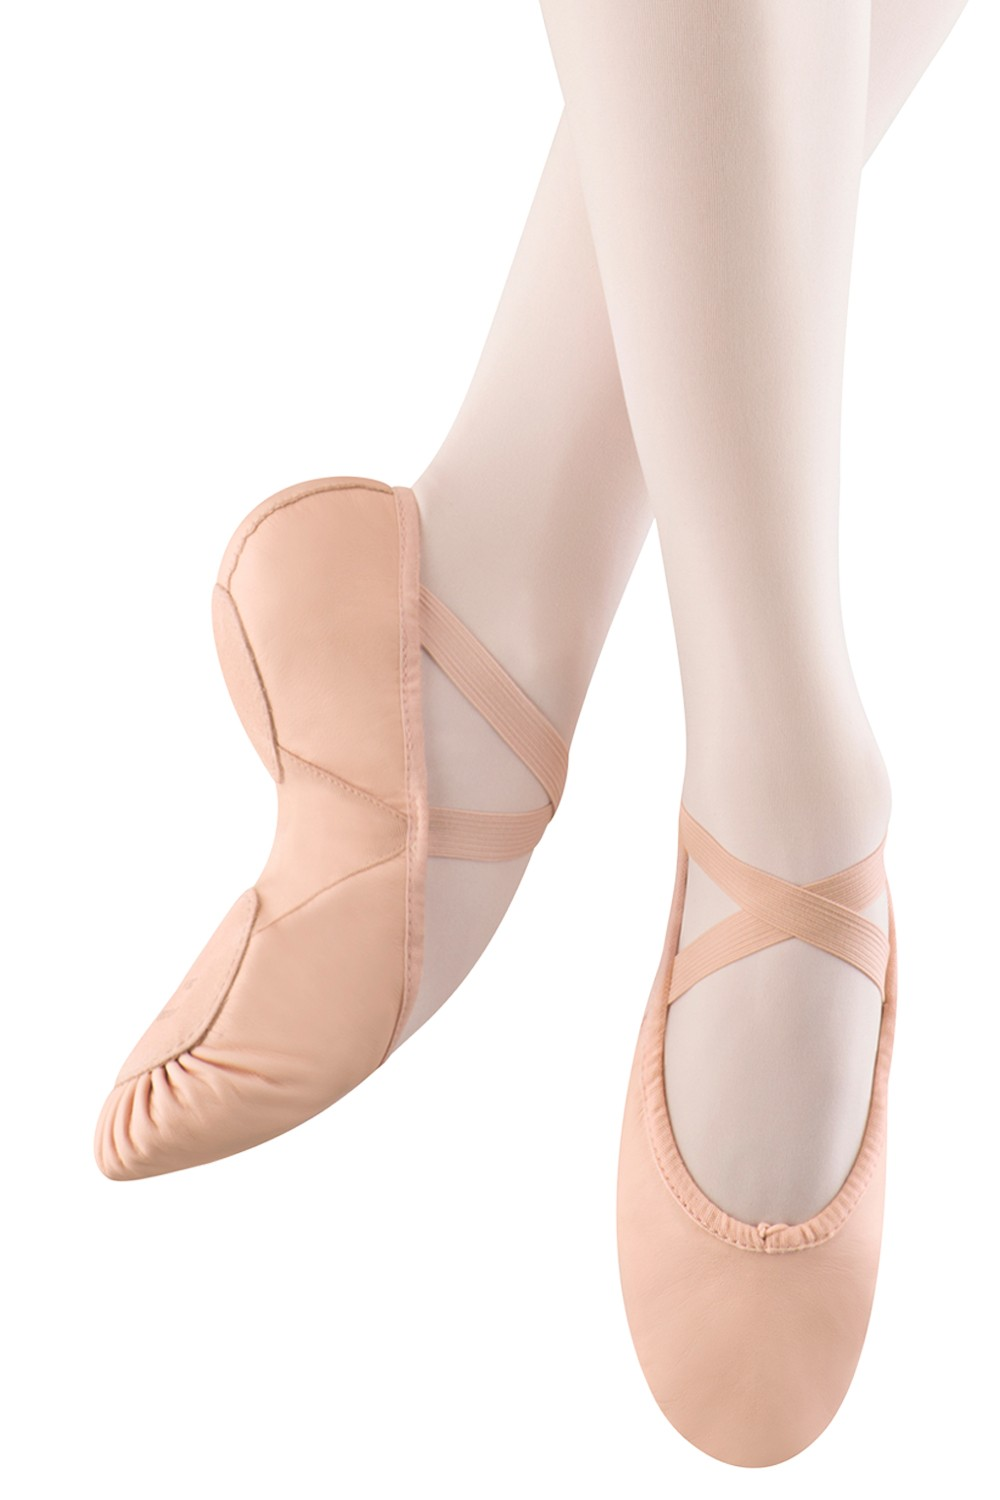 Prolite Ii Híbrido  Women's Ballet Shoes